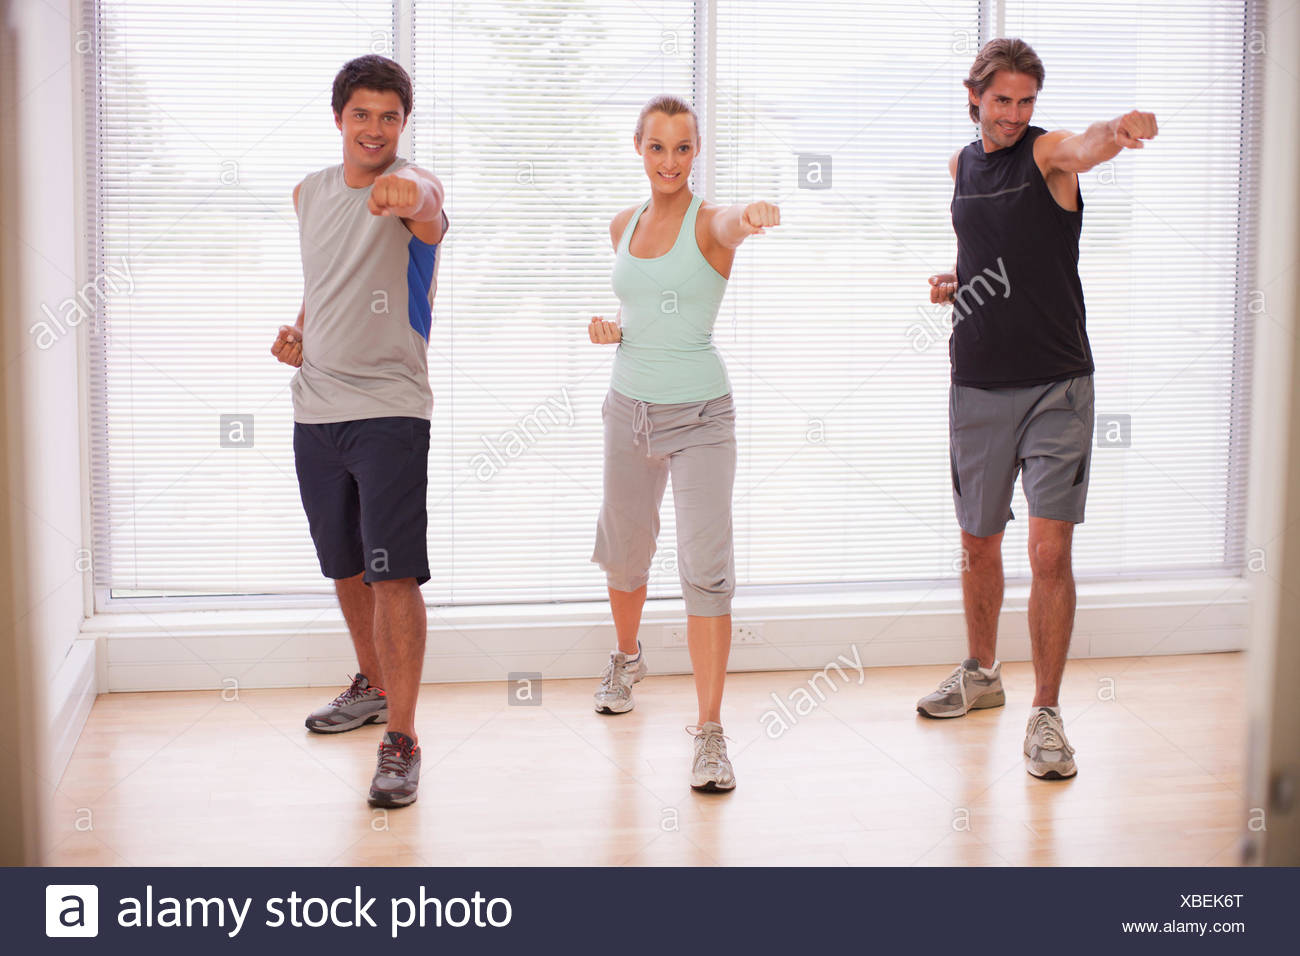 Portrait of smiling people in yoga class - Stock Image